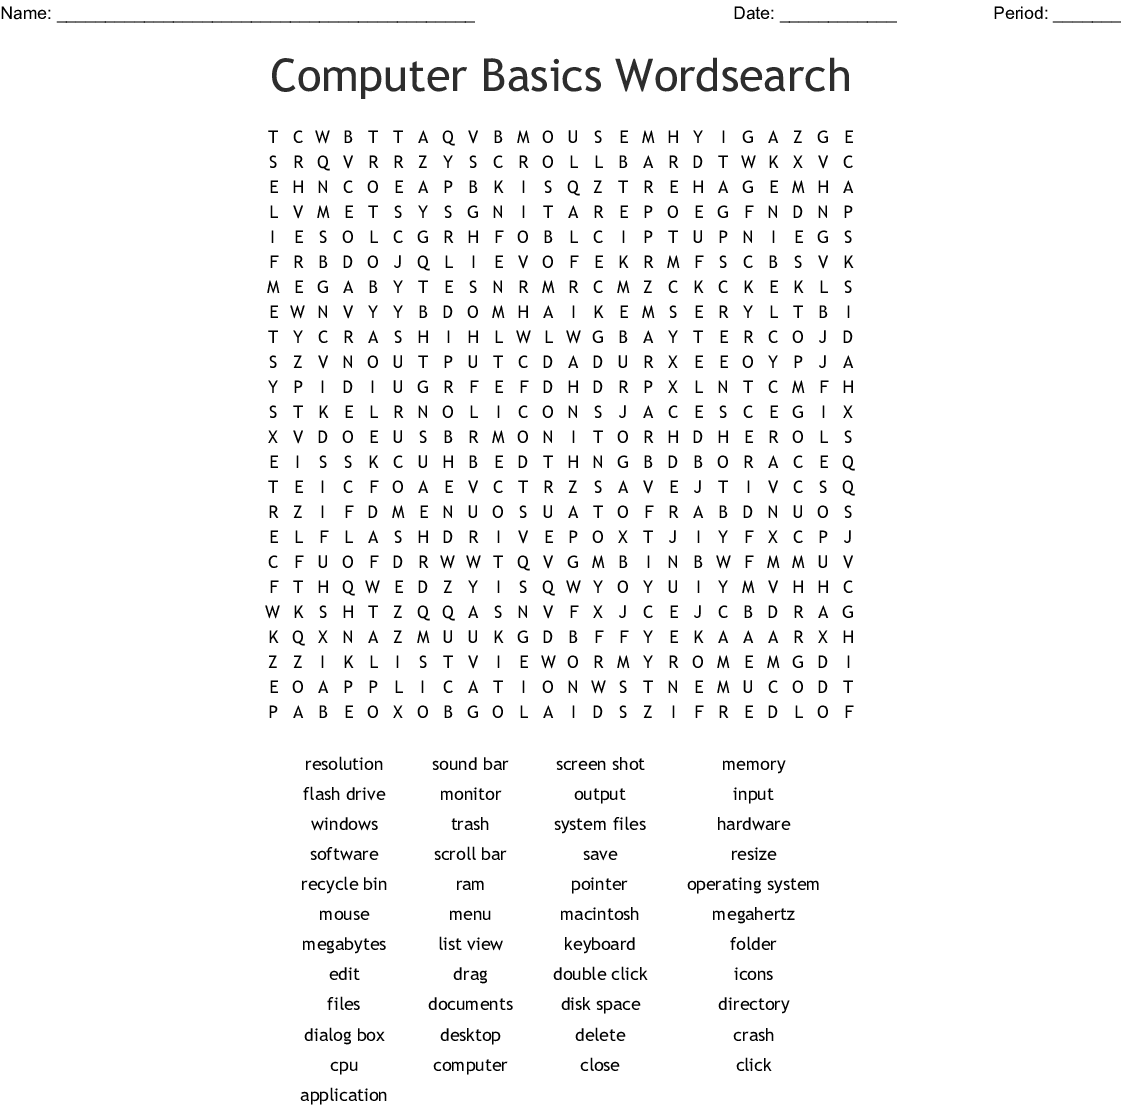 Computer Terms Word Searches: Computer Basics Wordsearch